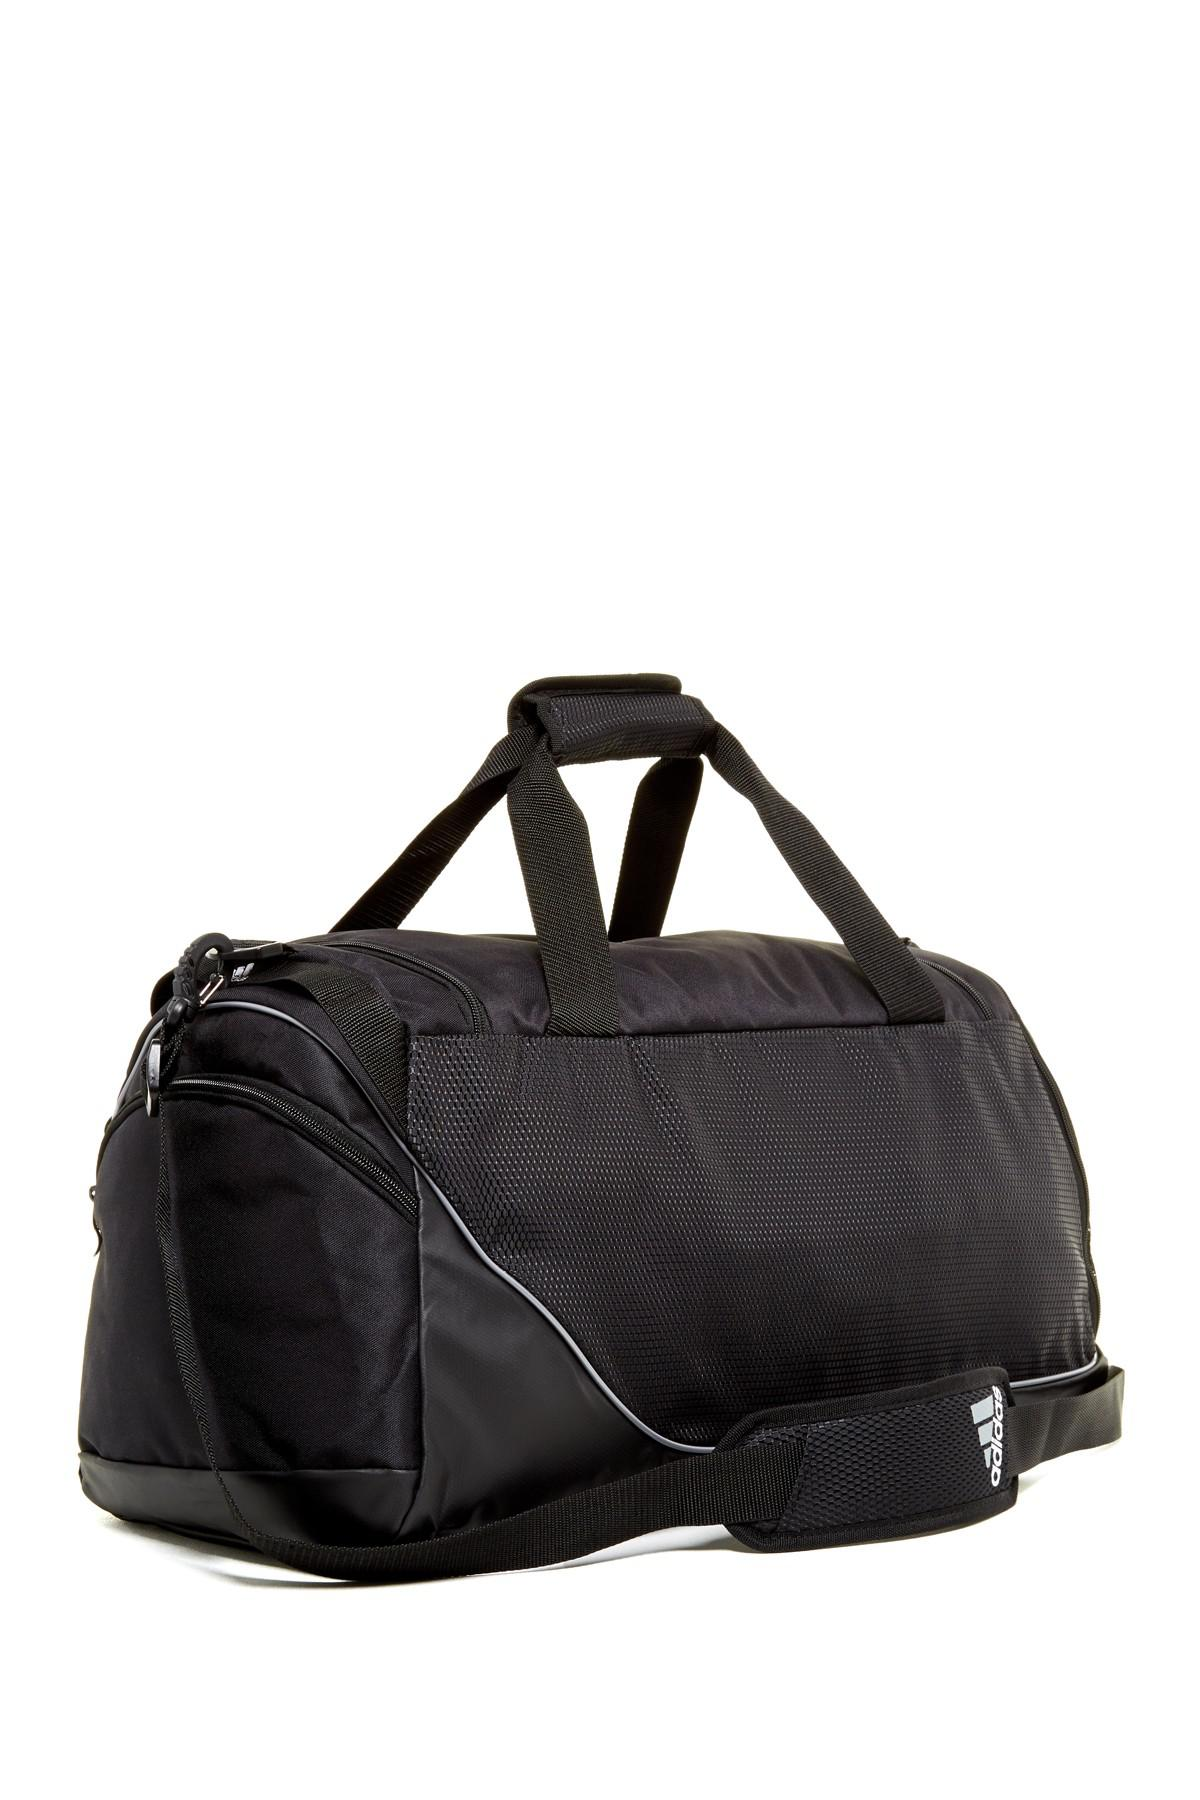 654f3979e3 Lyst - adidas Team Speed Medium Duffle Bag in Black for Men